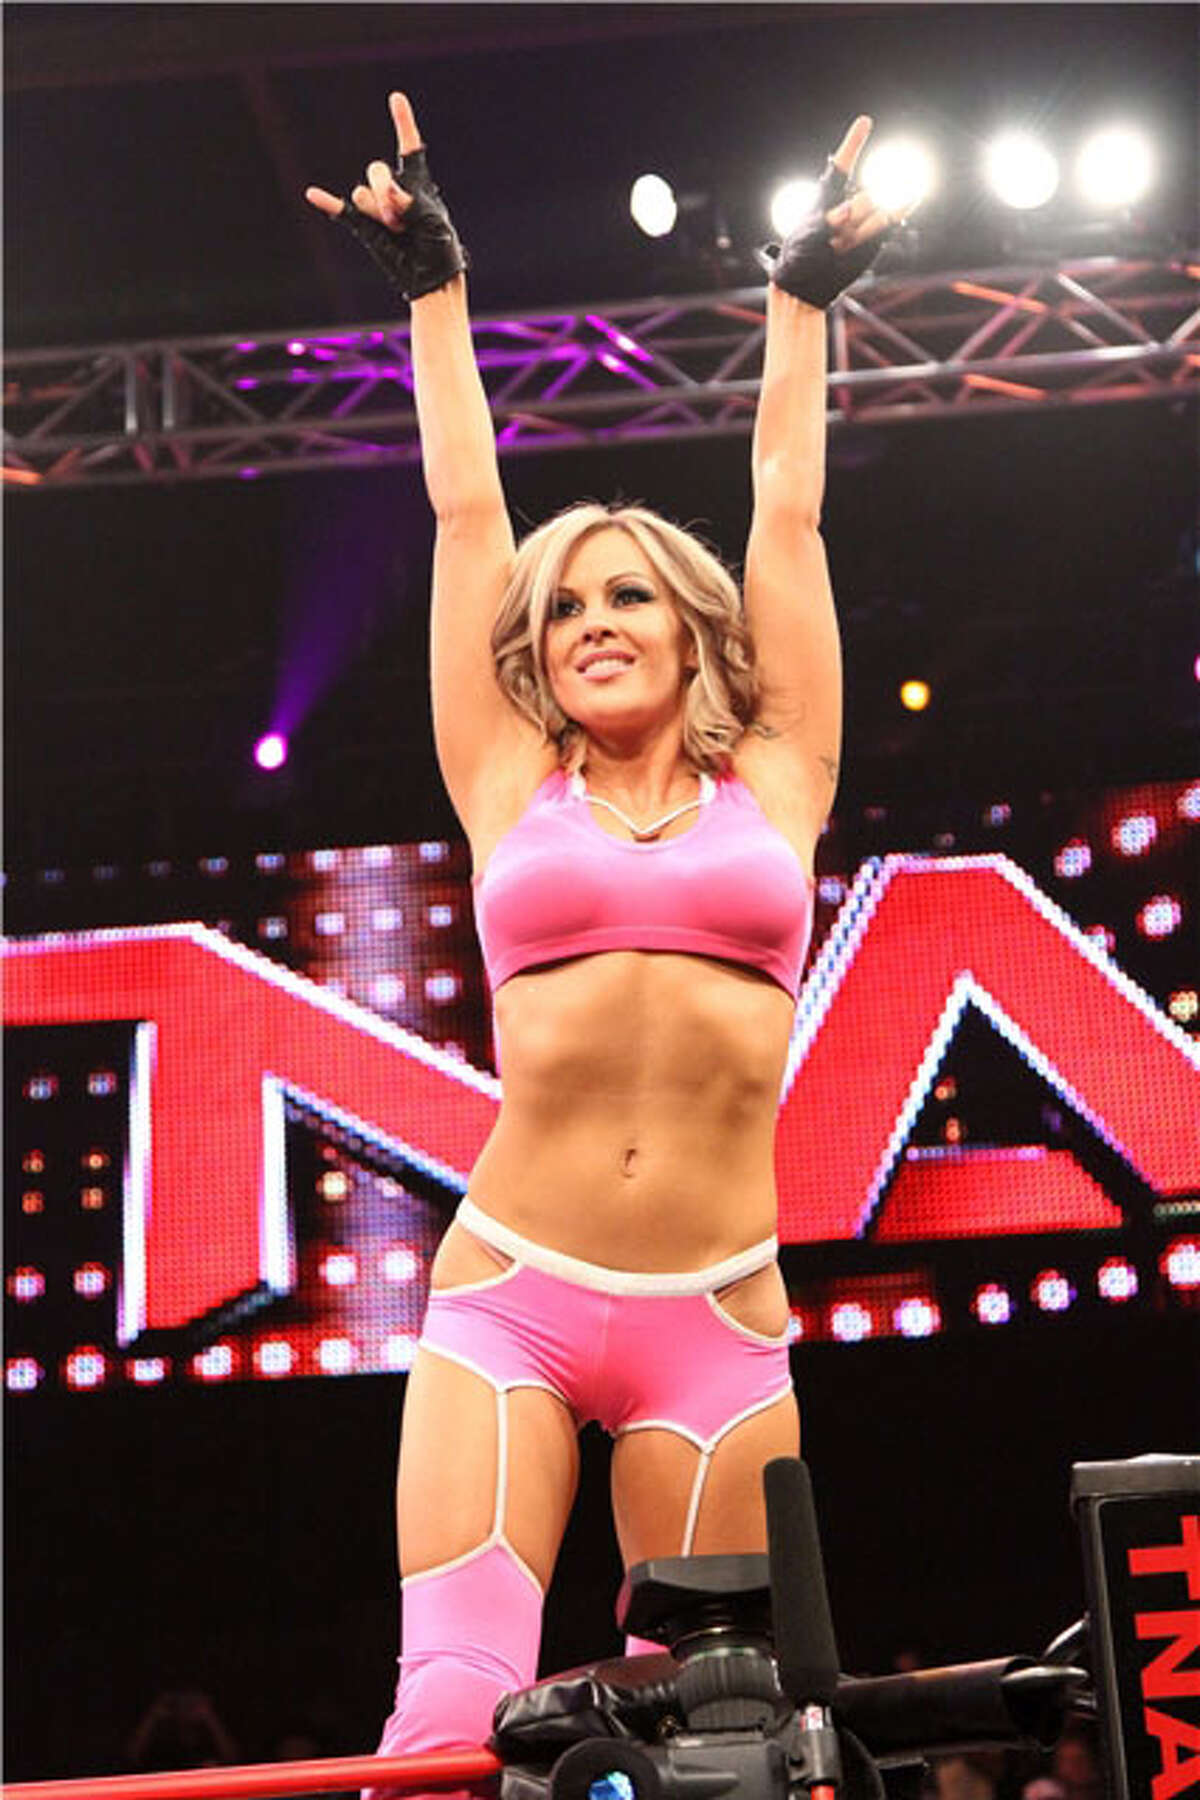 TNA Knockout Velvet Sky will compete in the TNA Impact Wrestling World Tour on Thursday, Jan. 12 at Toyota presents the Oakdale Theatre in Wallingford.